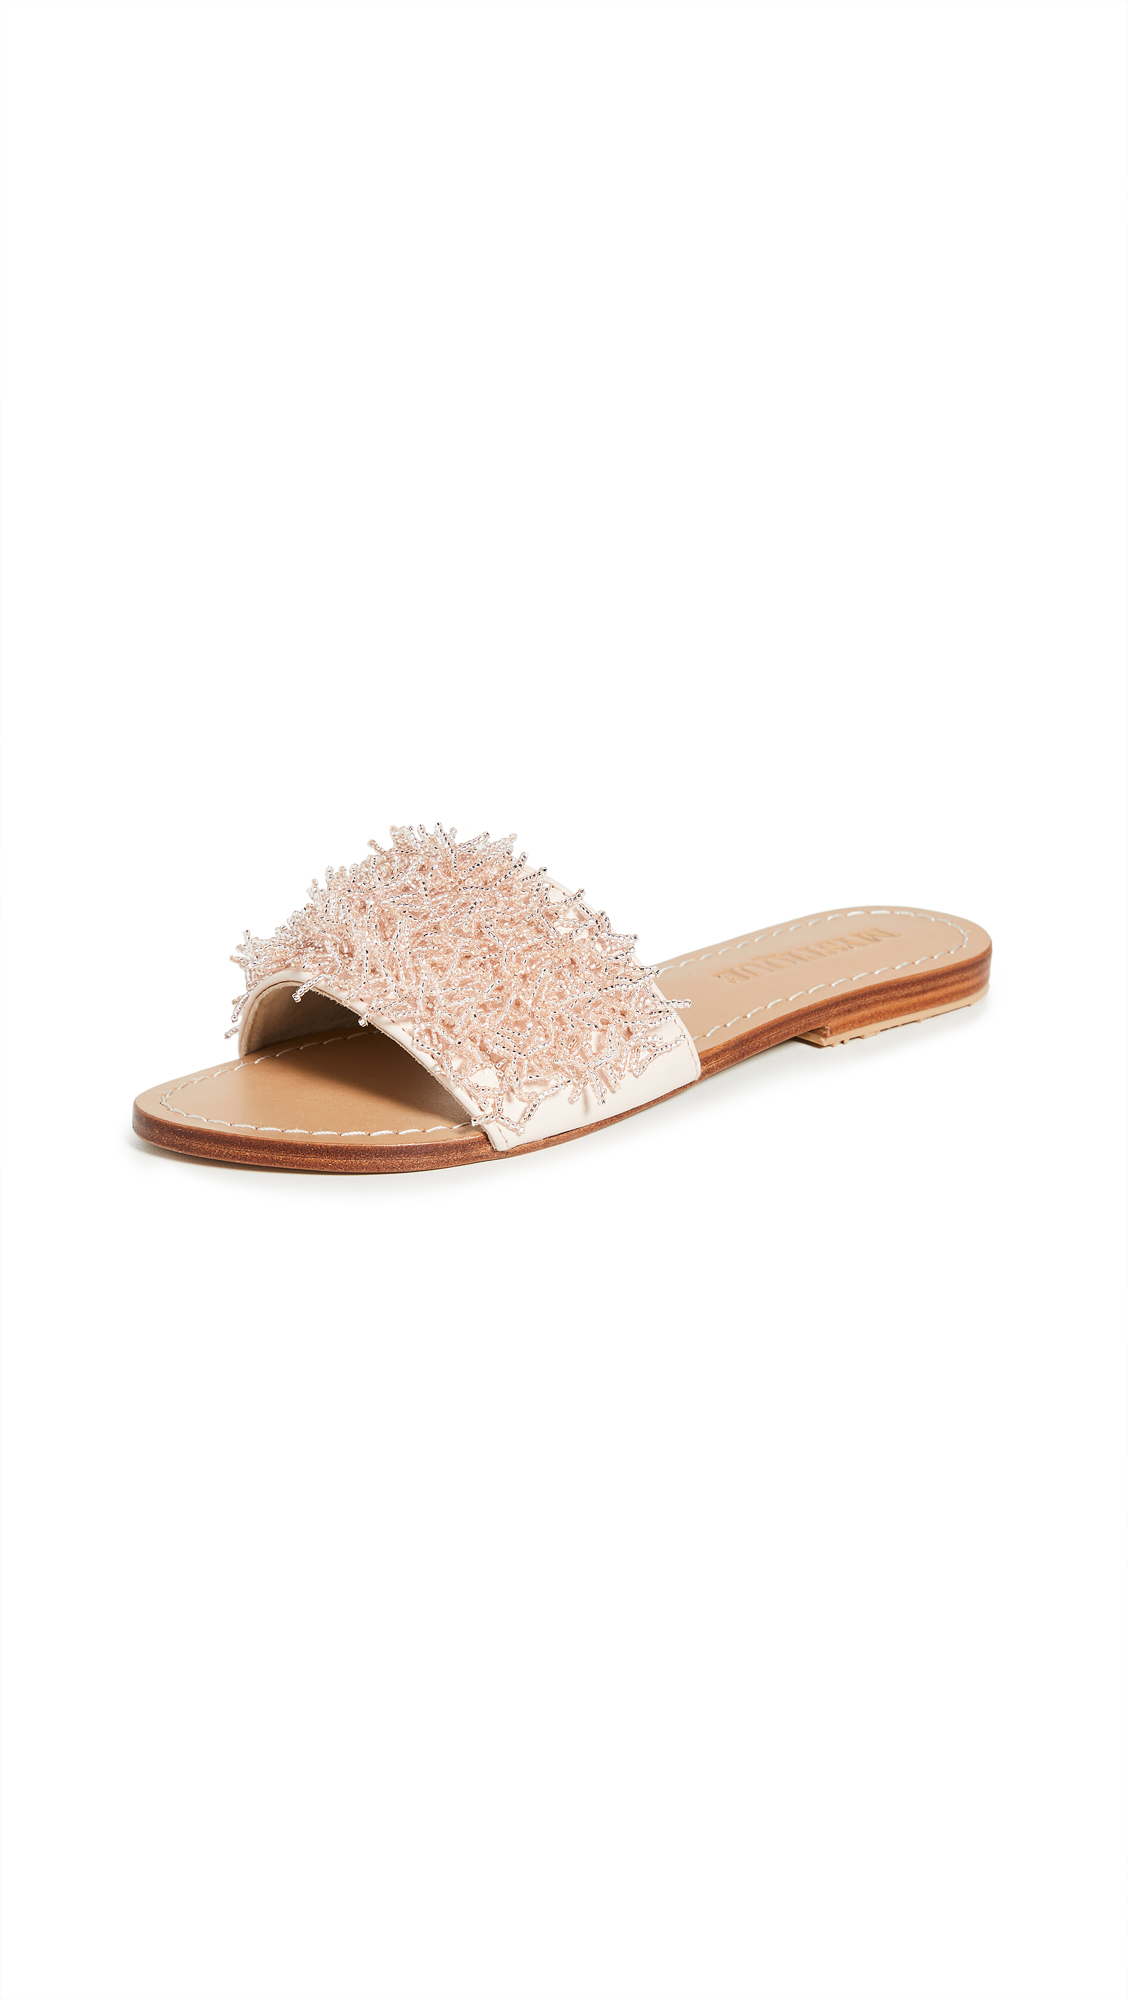 Mystique Beaded Slides - 40% Off Sale